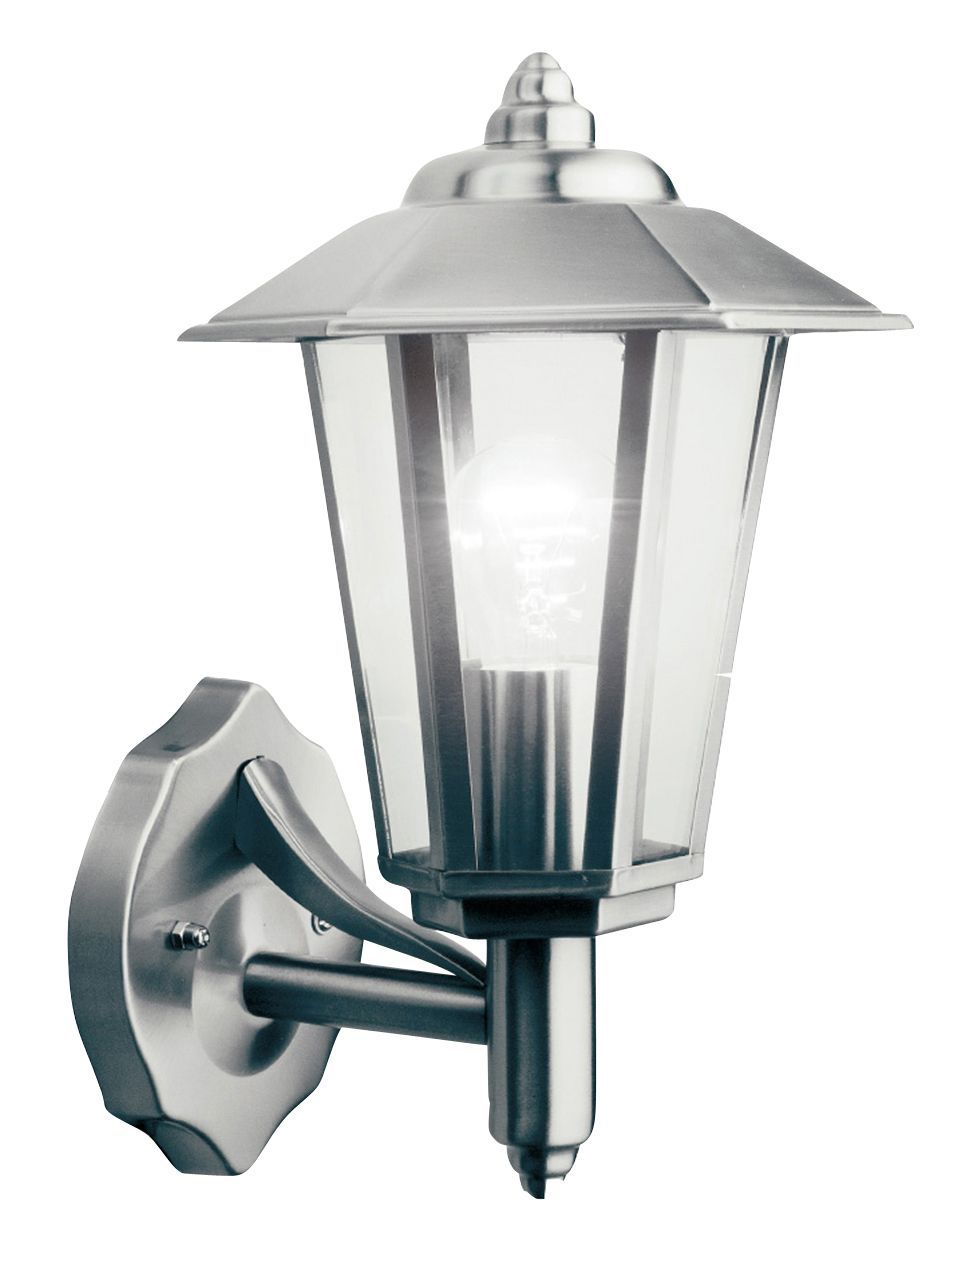 Newport stainless steel mains powered external wall lantern newport stainless steel mains powered external wall lantern departments diy at bq arubaitofo Images